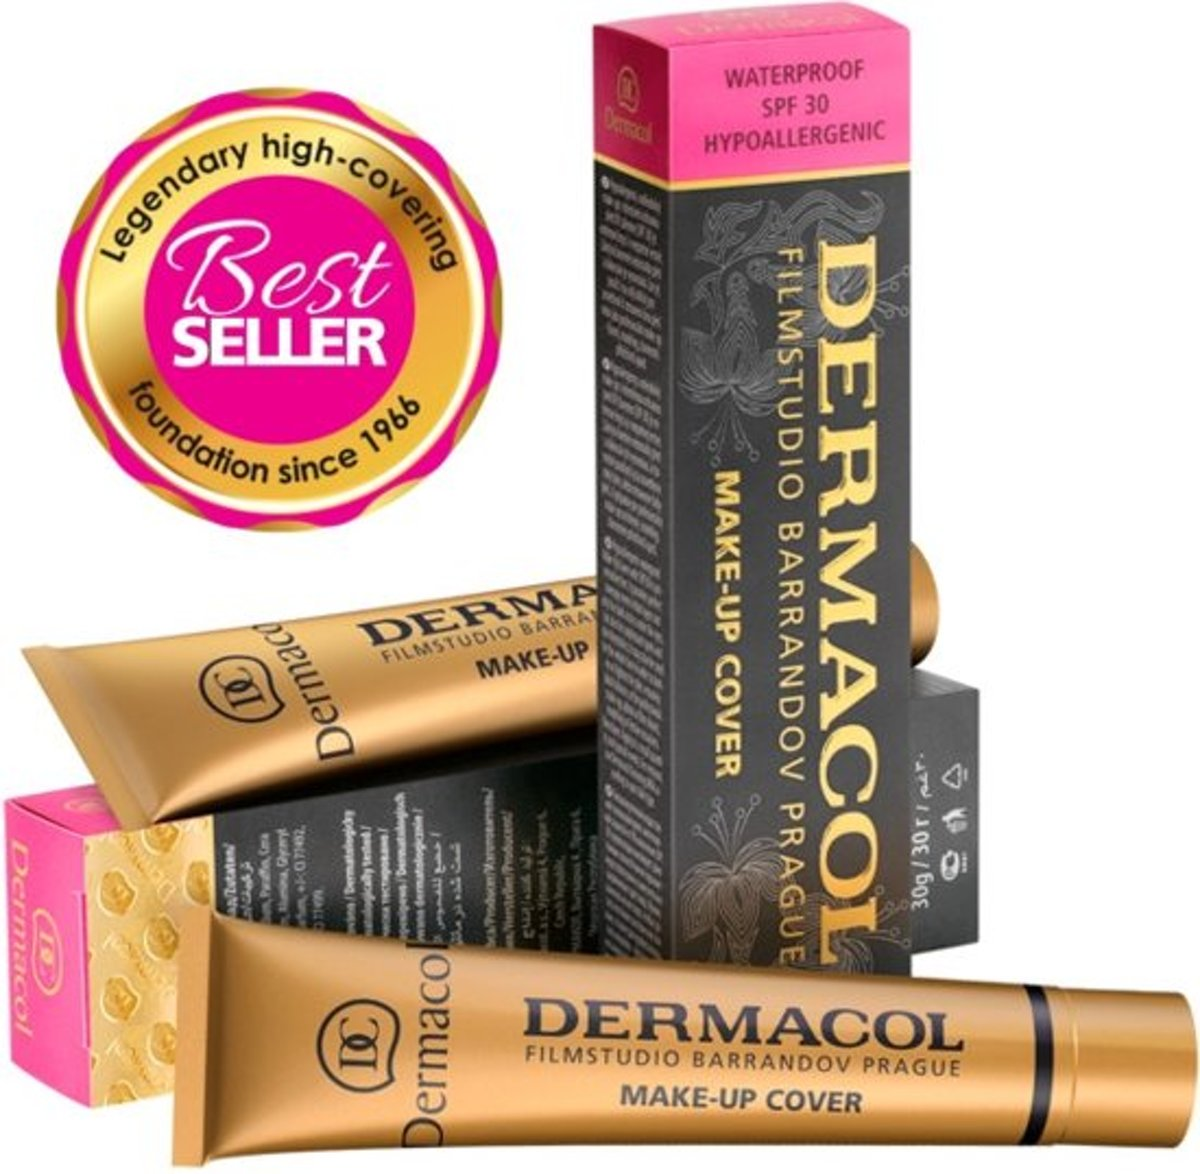 DERMACOL CAMOUFLAGE MAKE-UP COVER LEGENDARY HIGH COVERING MAKE-UP - 30 GRAM - VROUW - WATERPROOF - TINT 222